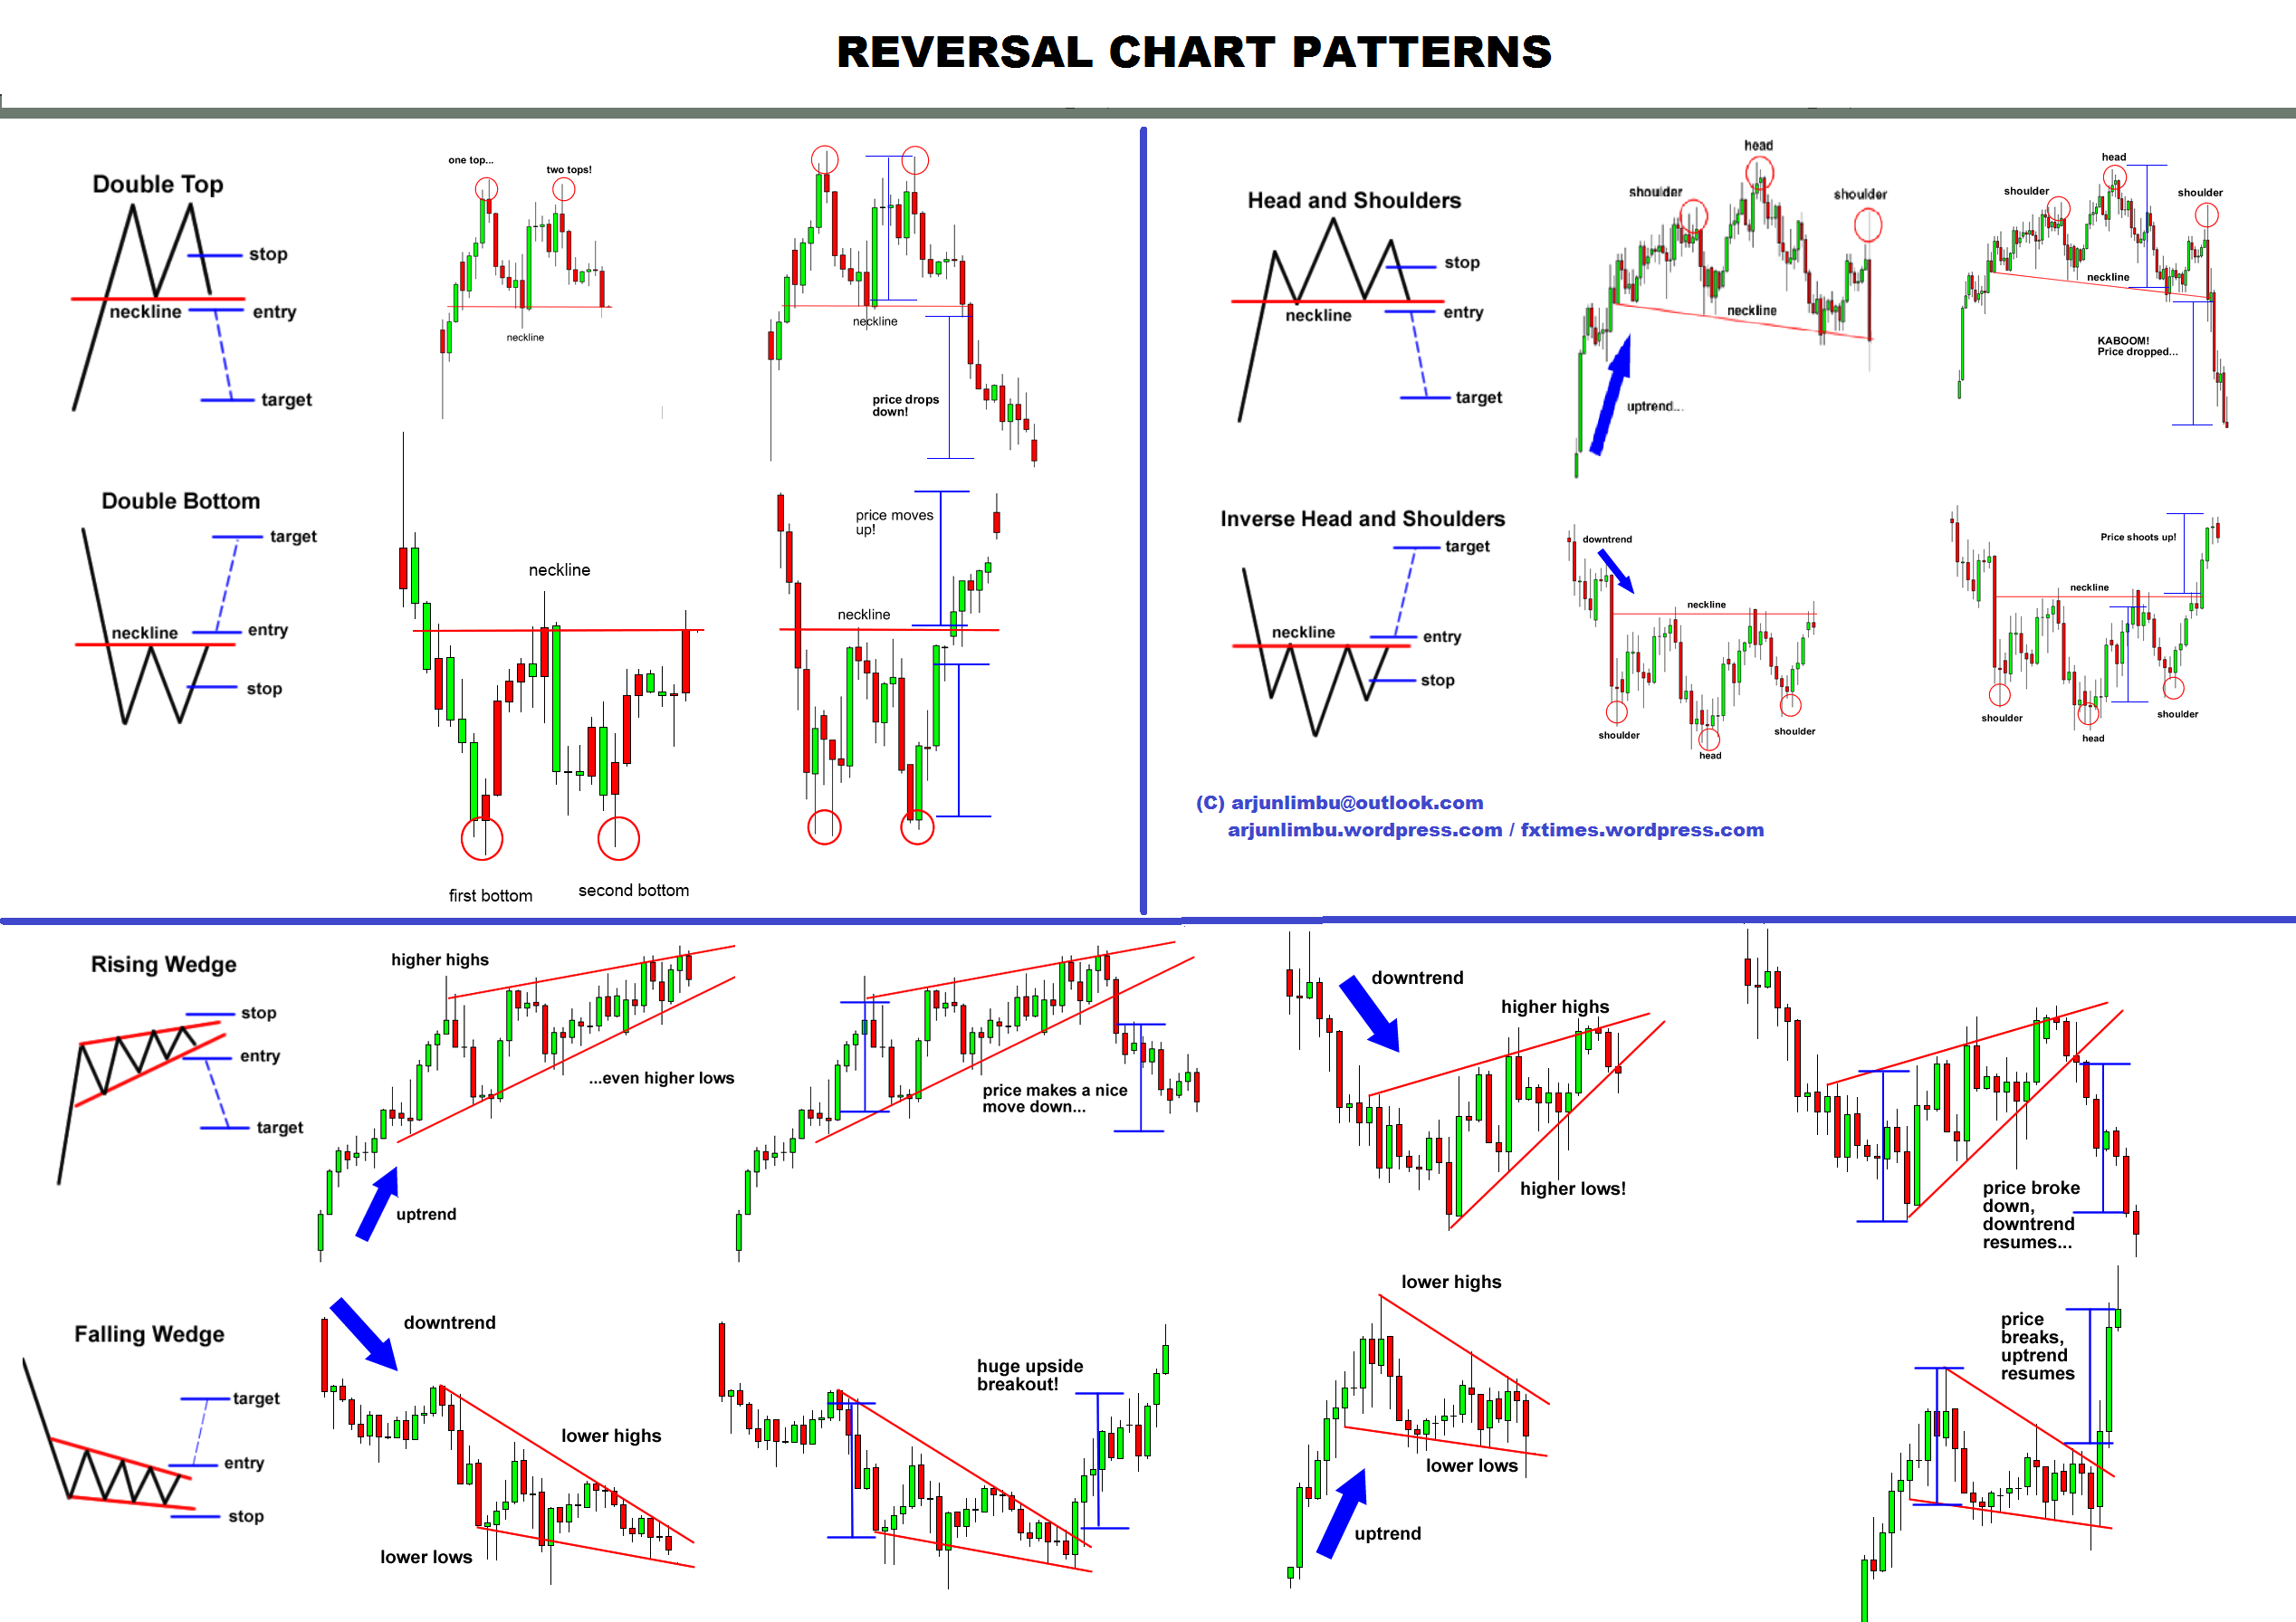 All chart patterns repeats and predicted accurately as the 3 market